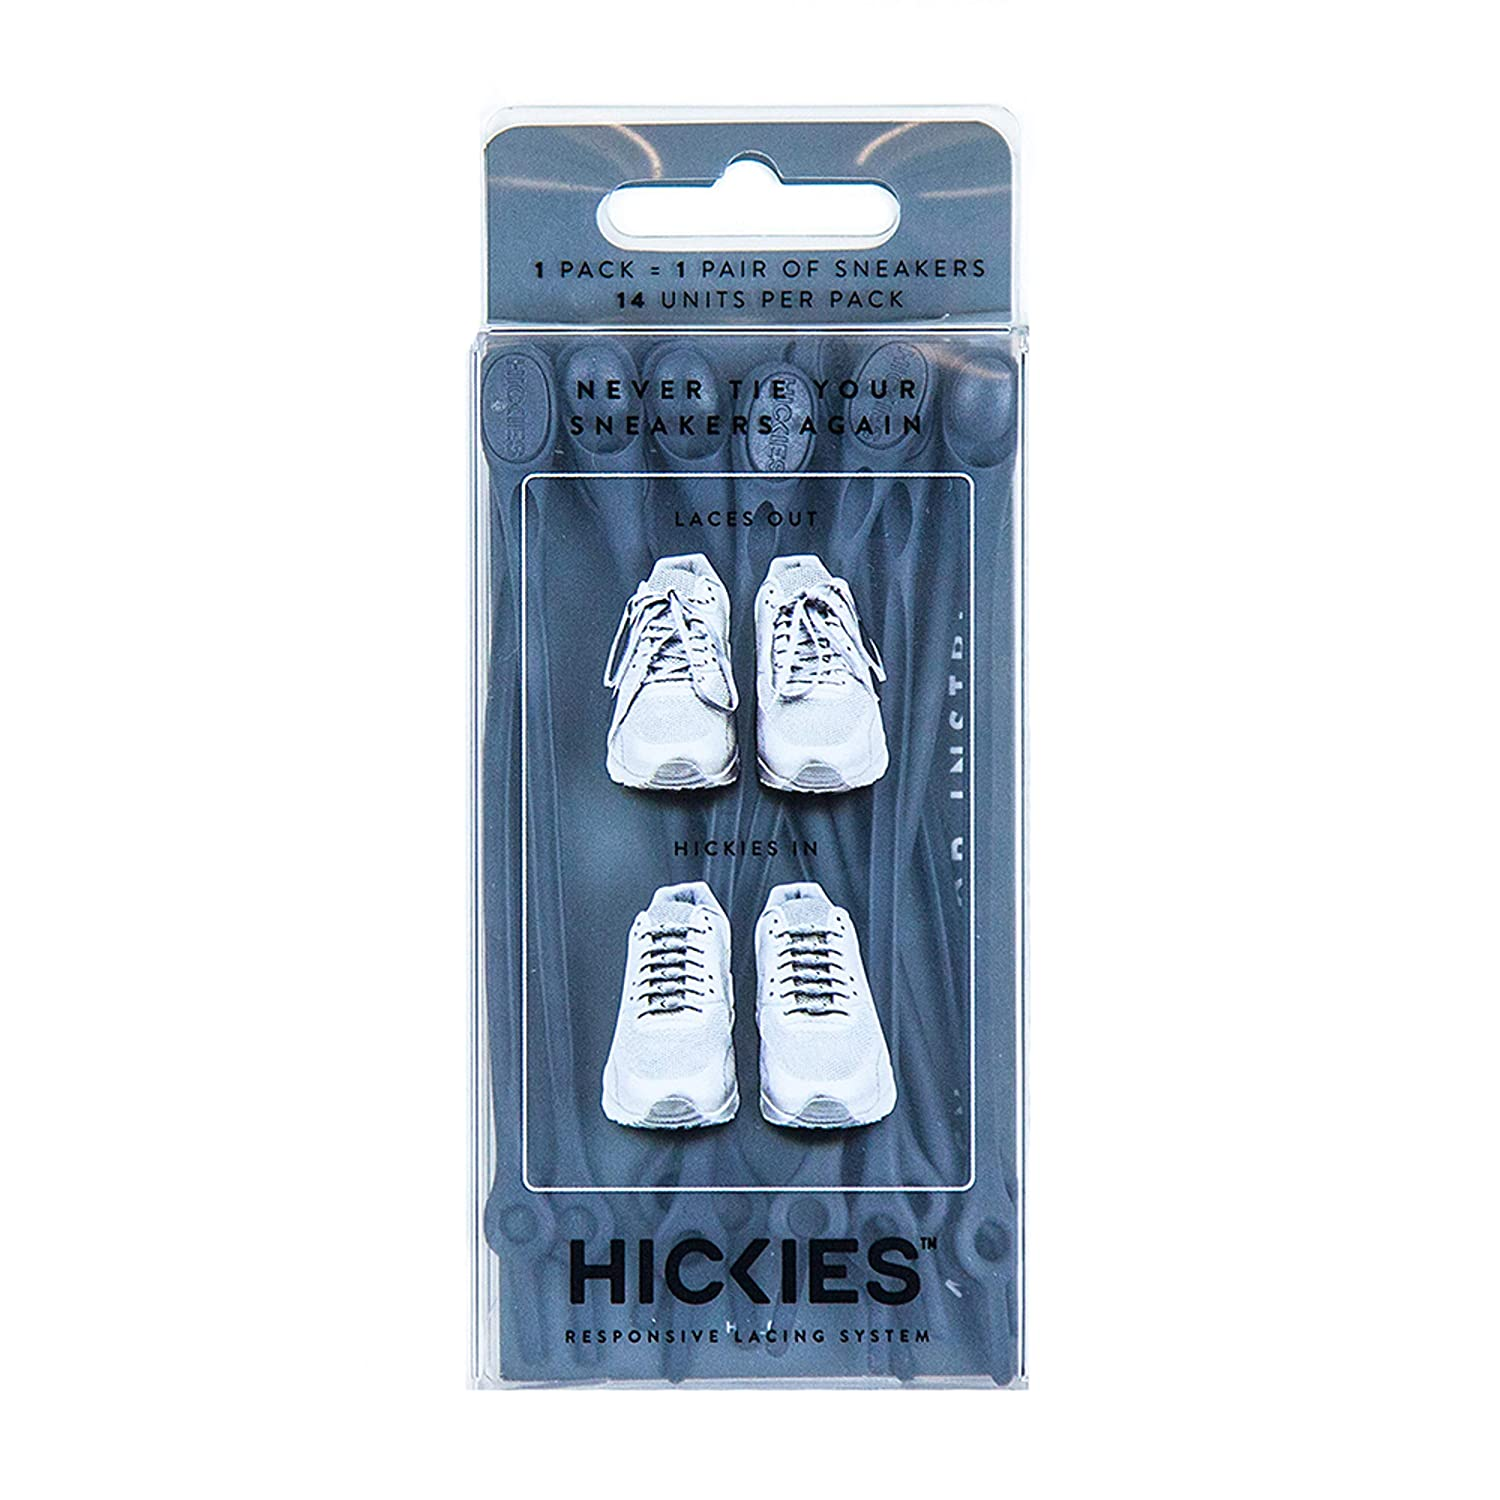 da6e9d25767a8 Mua sản phẩm HICKIES 1.0 One Size Fits All Elastic No-Tie Shoelaces ...